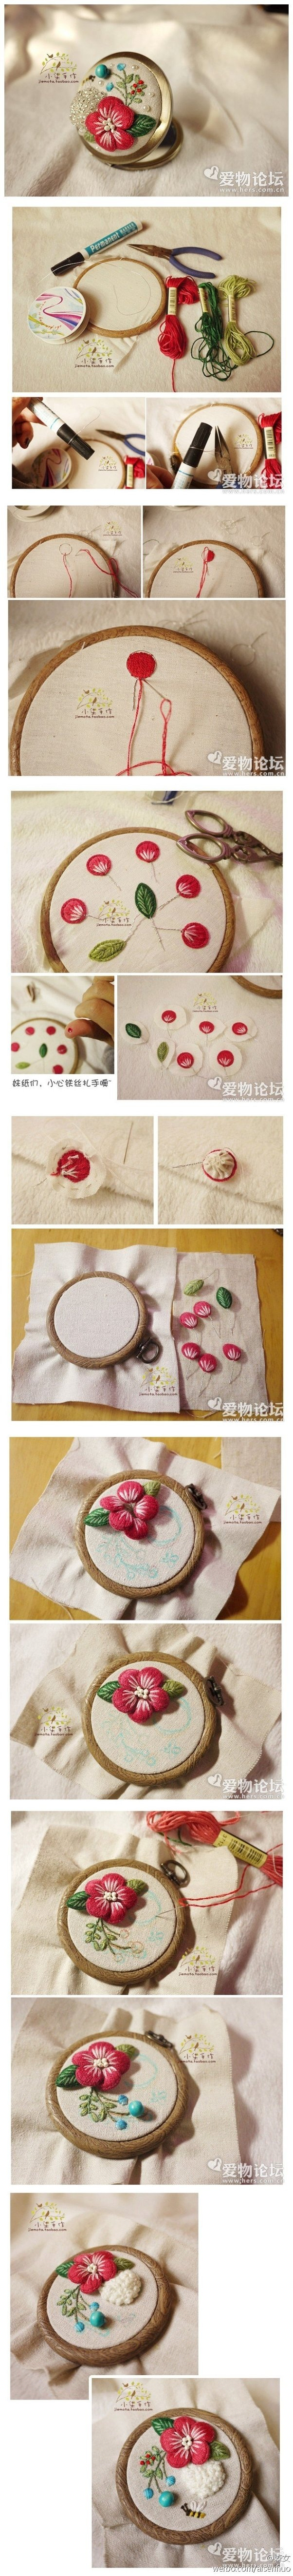 How To 3d Embroidery